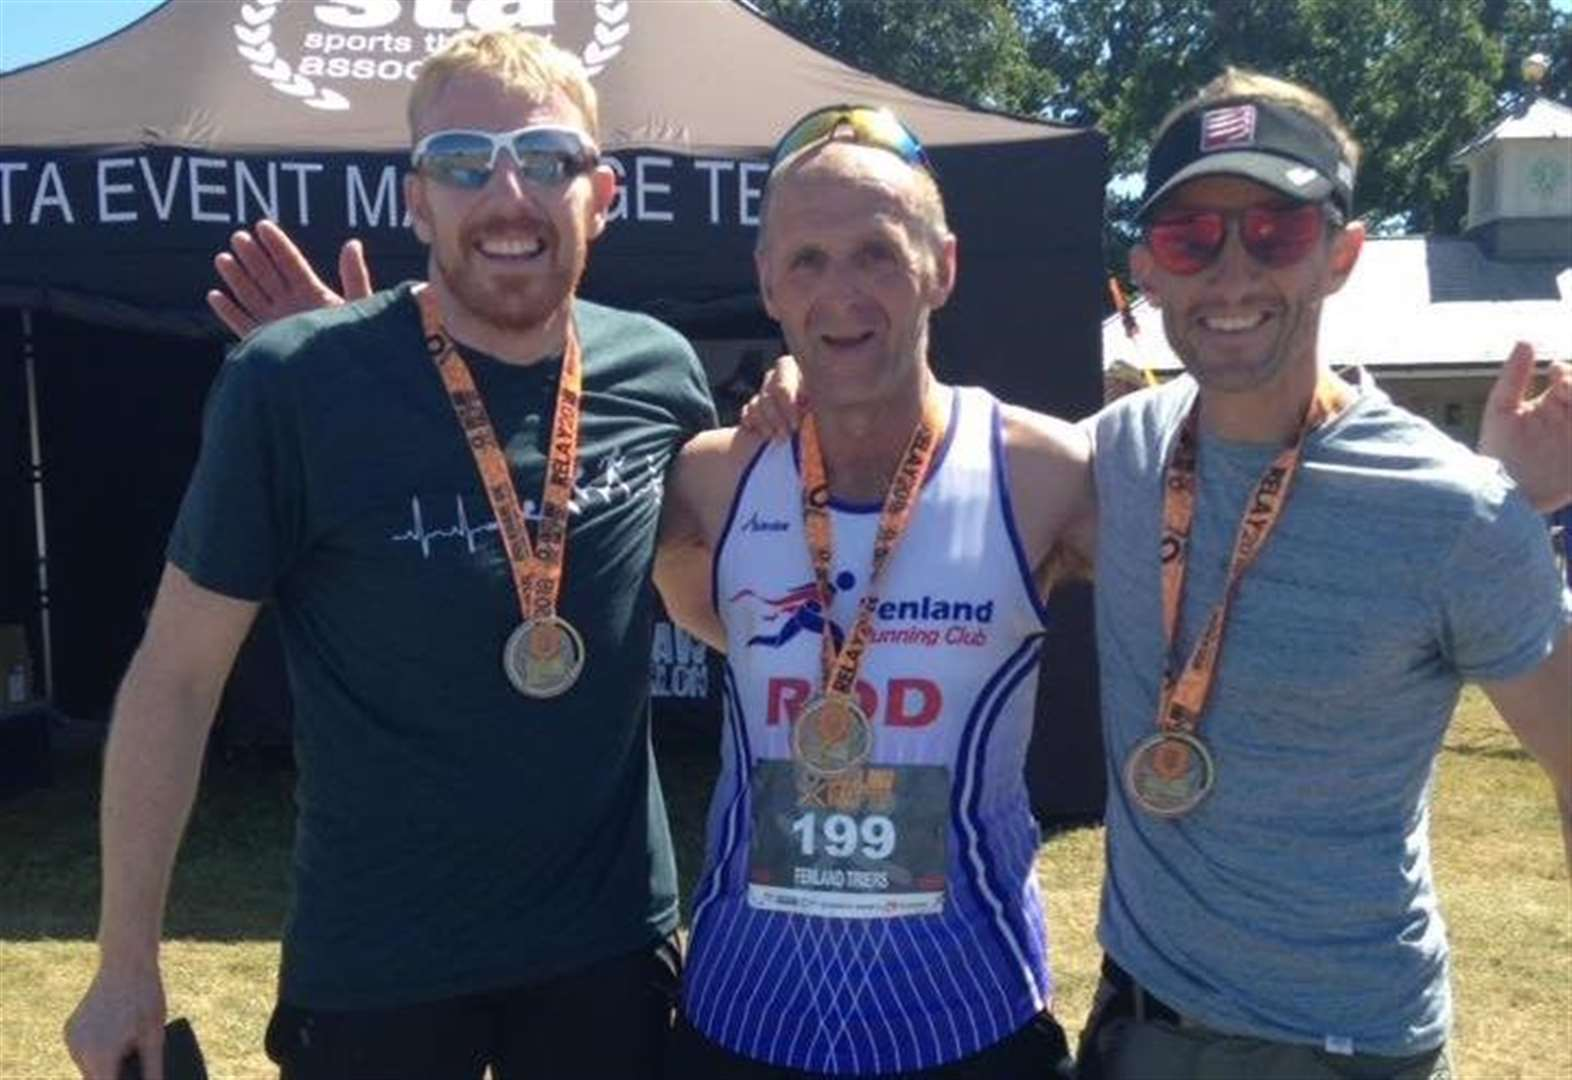 Fenland Running Club take on Holkham Half Ironman, Triathlon and fun run